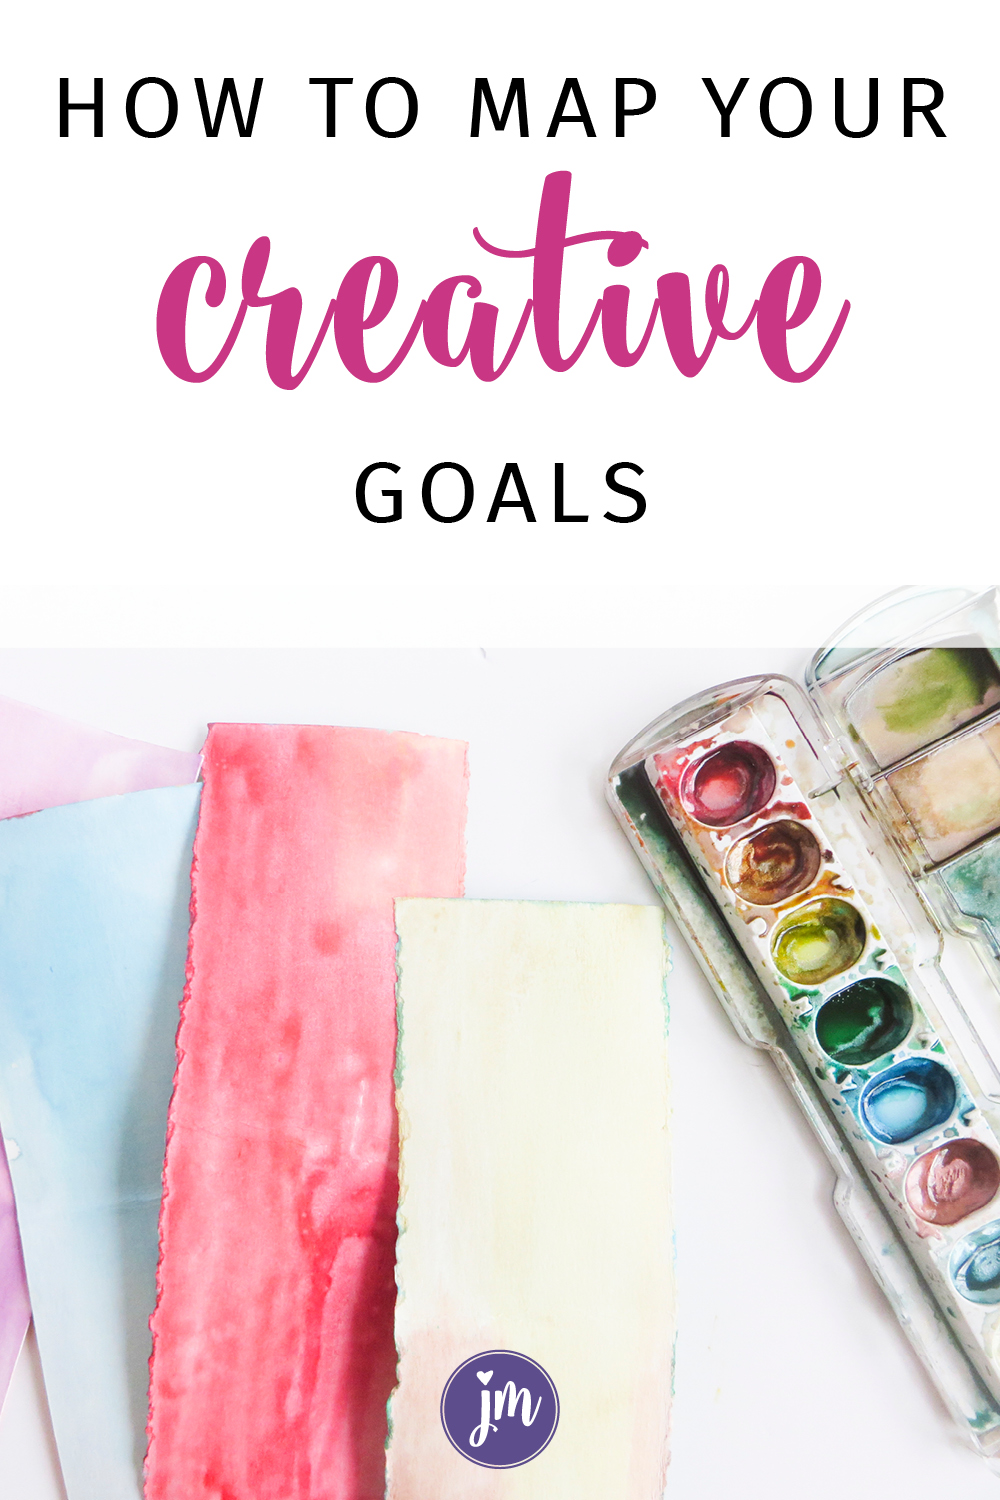 Learn how to create a goal map for your creative projects! This is such a great way to keep track of where you are and what you need to do PLUS you can make your goal map reflect your own unique personality. Love this idea!